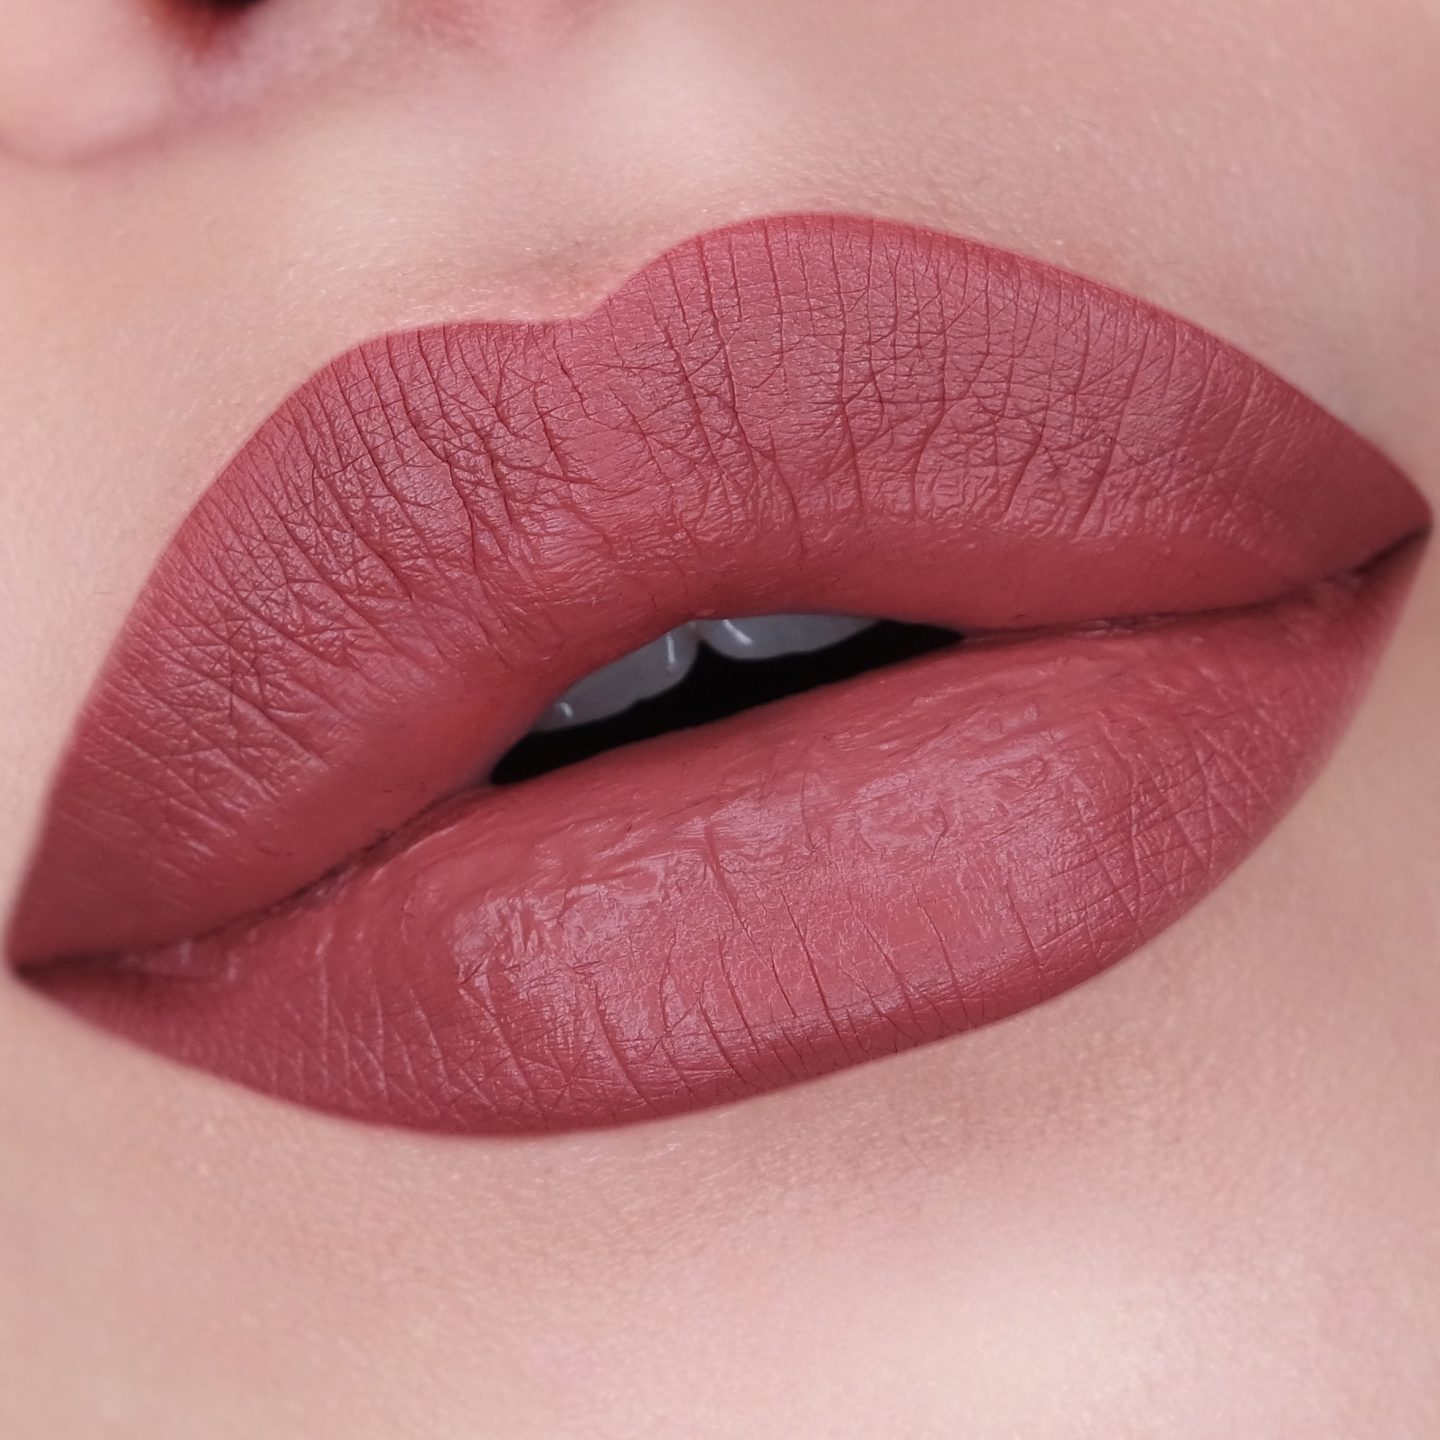 NARS Liquid Lip Collection Review - The Beautynerd